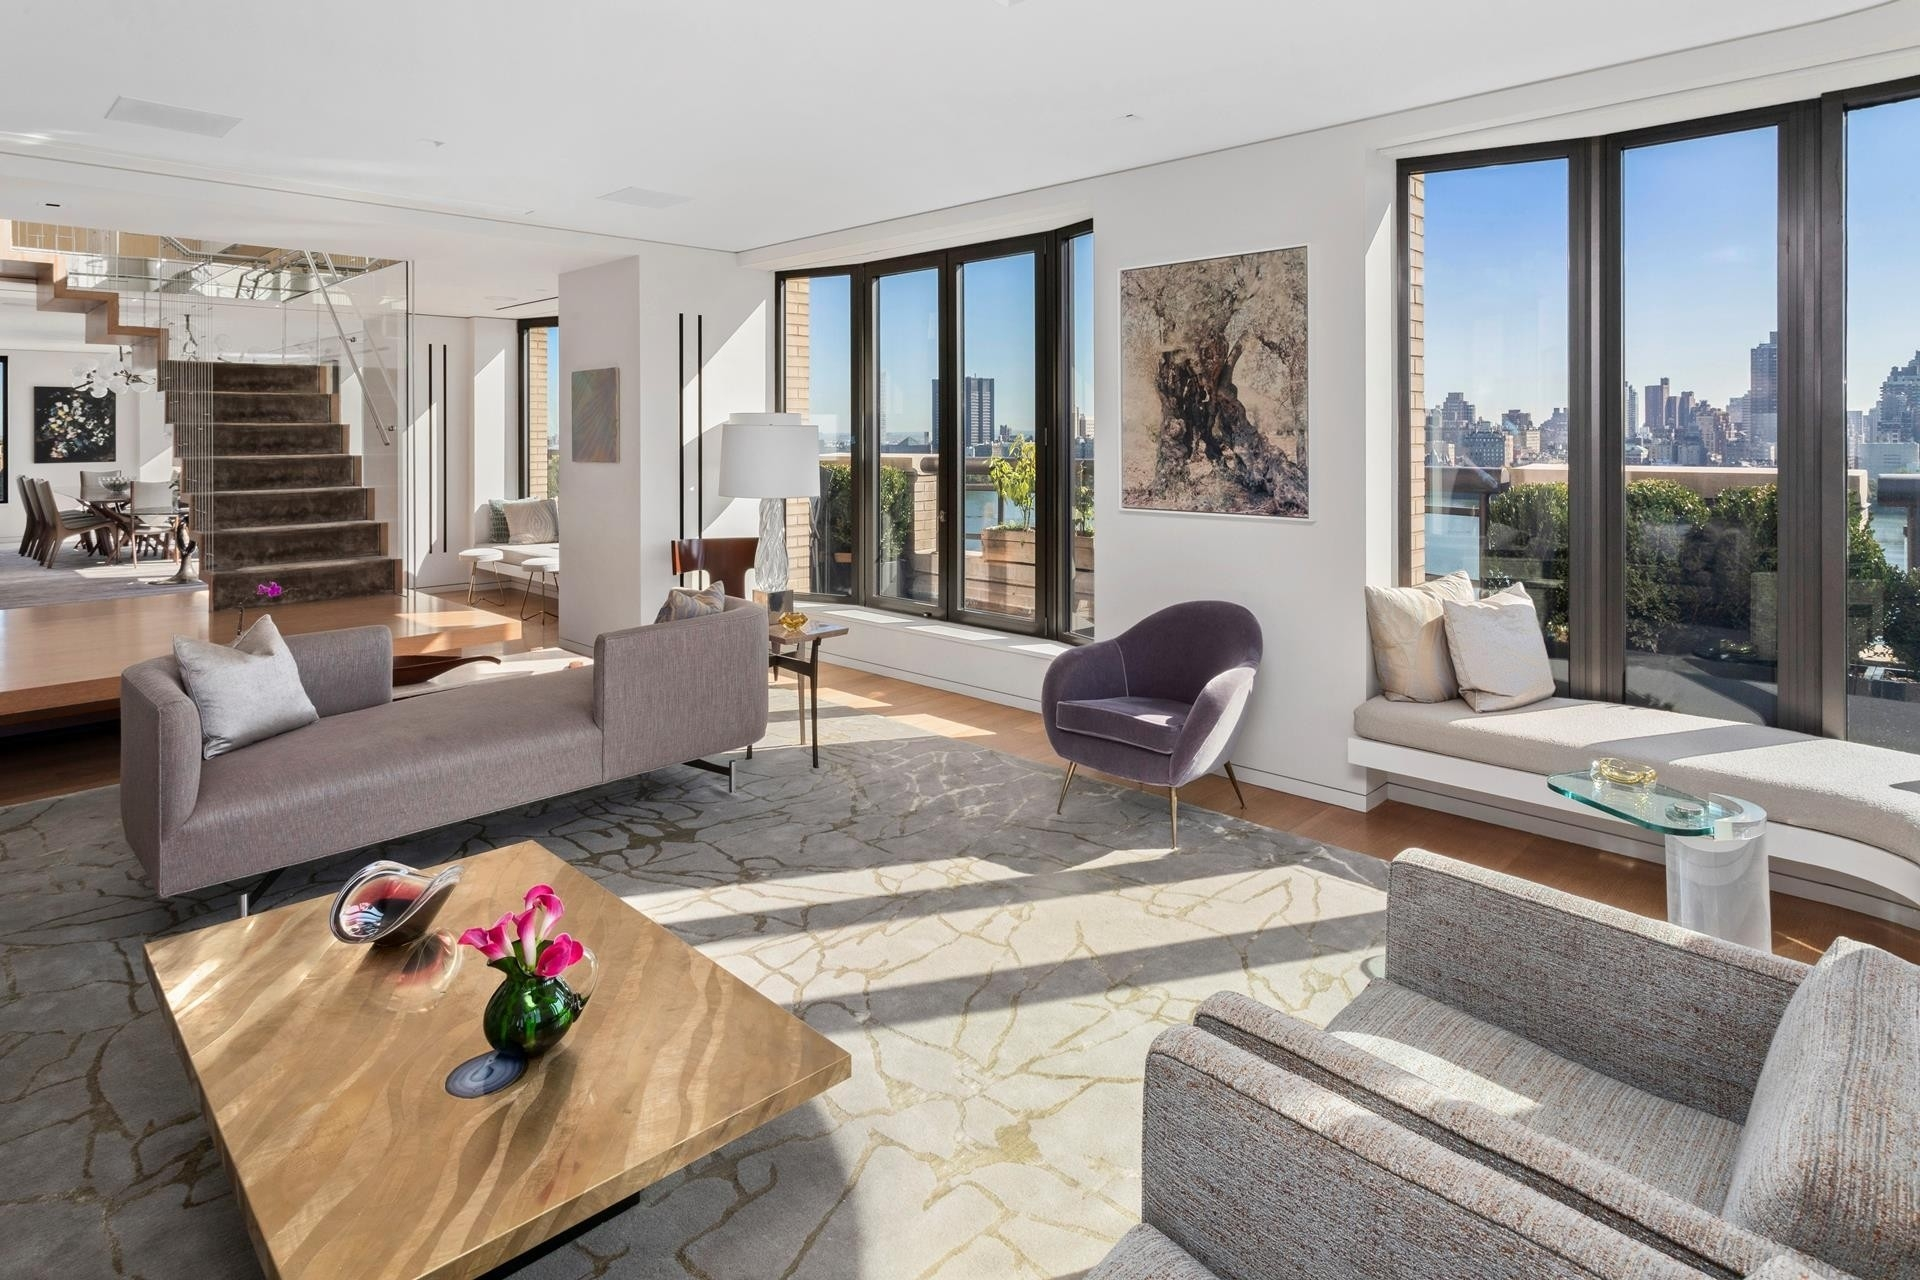 4. Condominiums for Sale at 279 CPW, 279 Central Park West, PHBA Upper West Side, New York, NY 10024